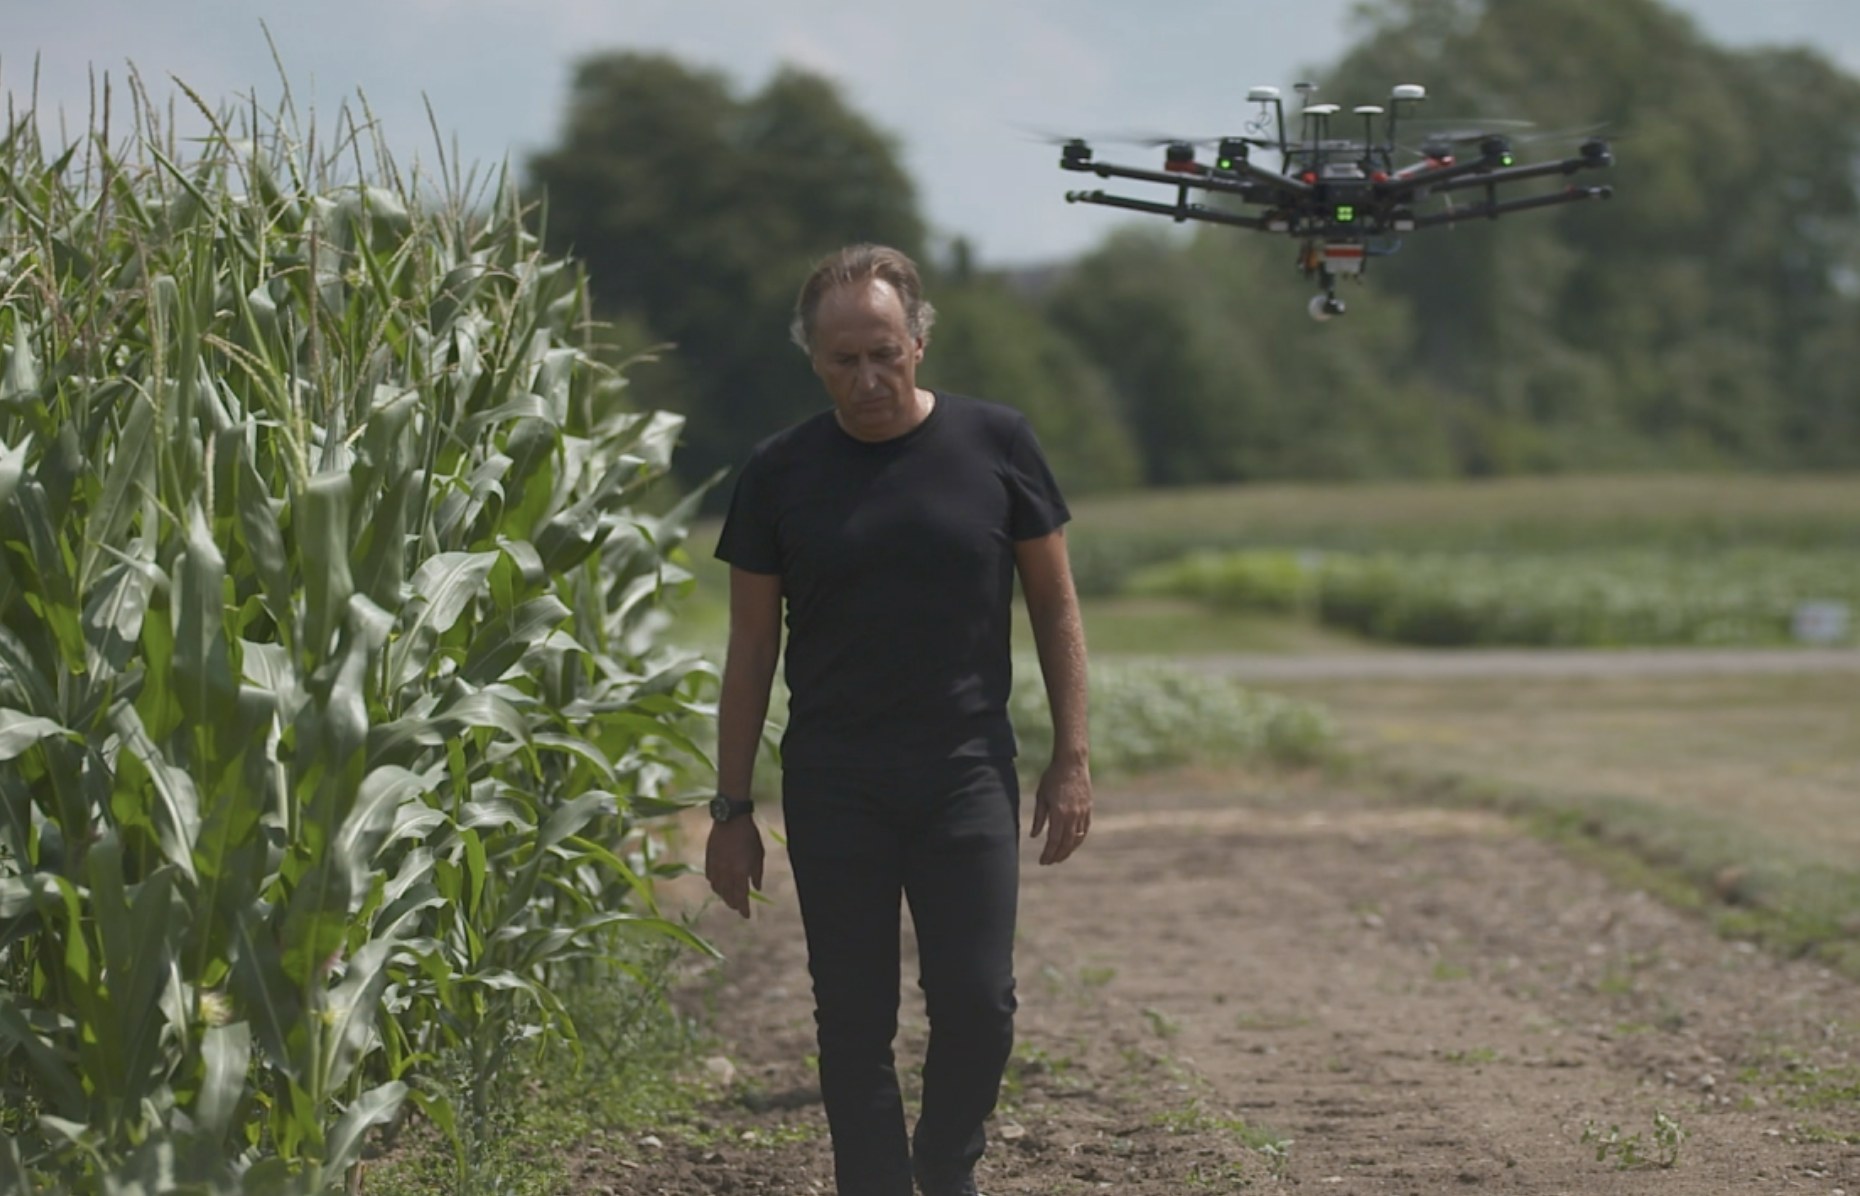 Bruno Basso walks in field with drone